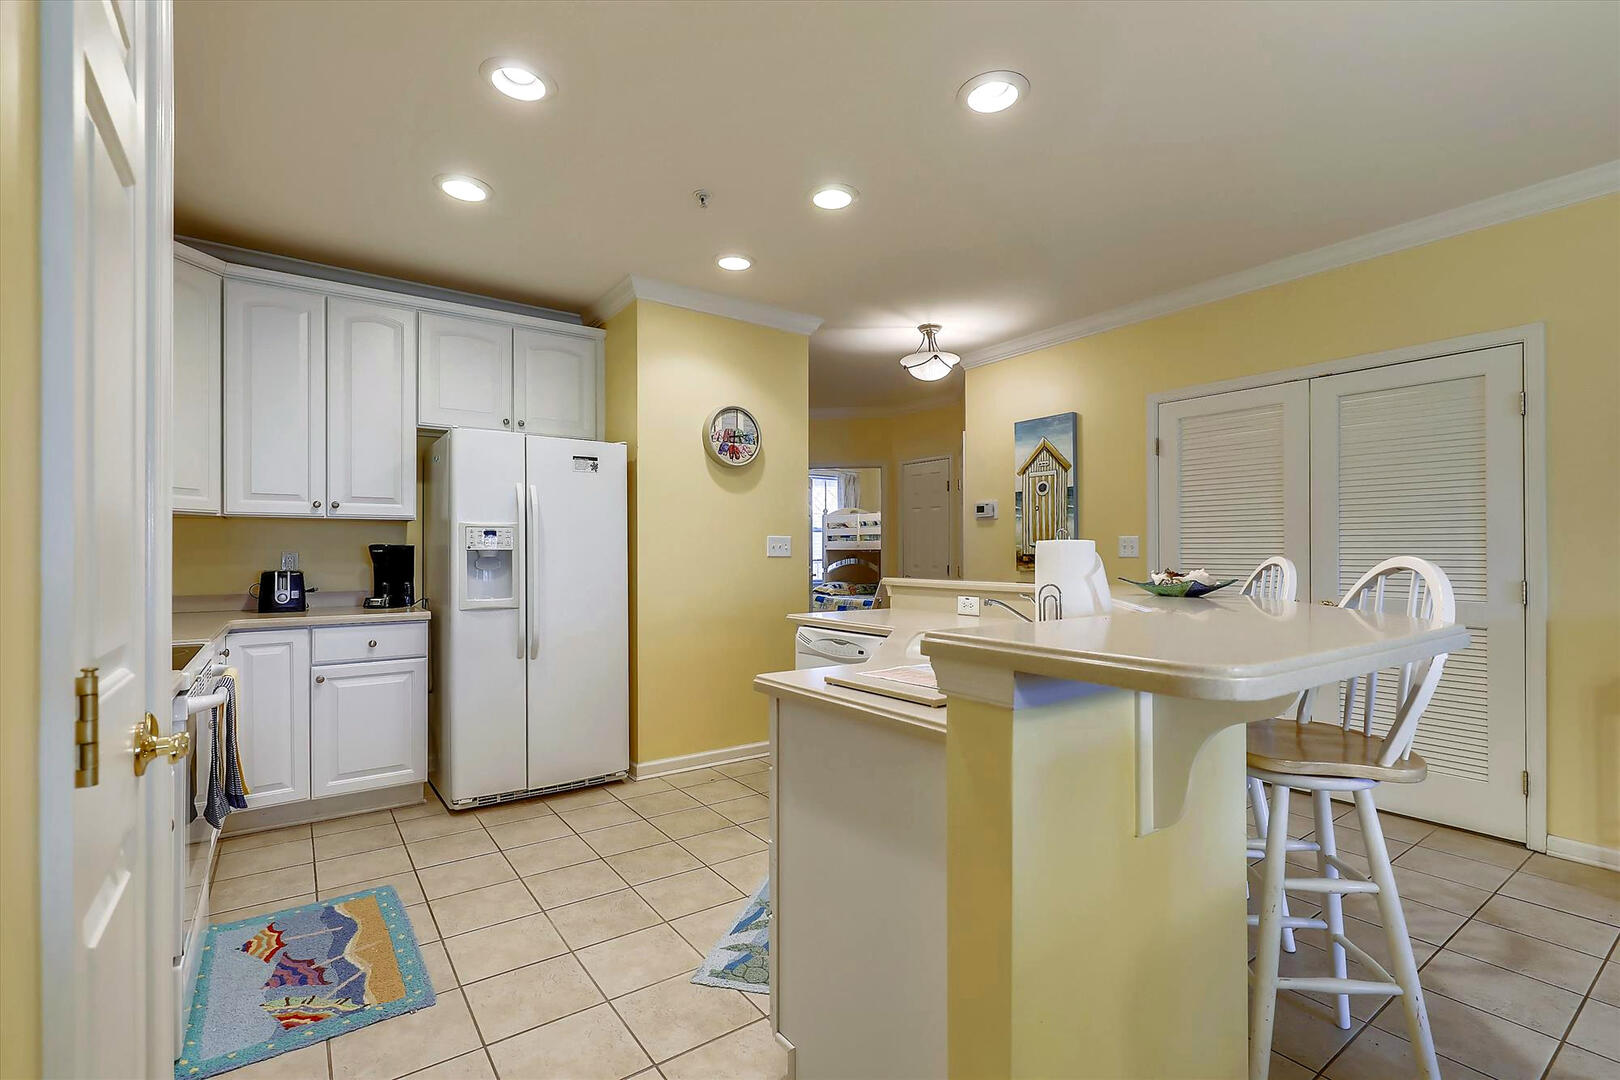 Kitchen of 37 Fountain Dr. W 3C in Sunset Island